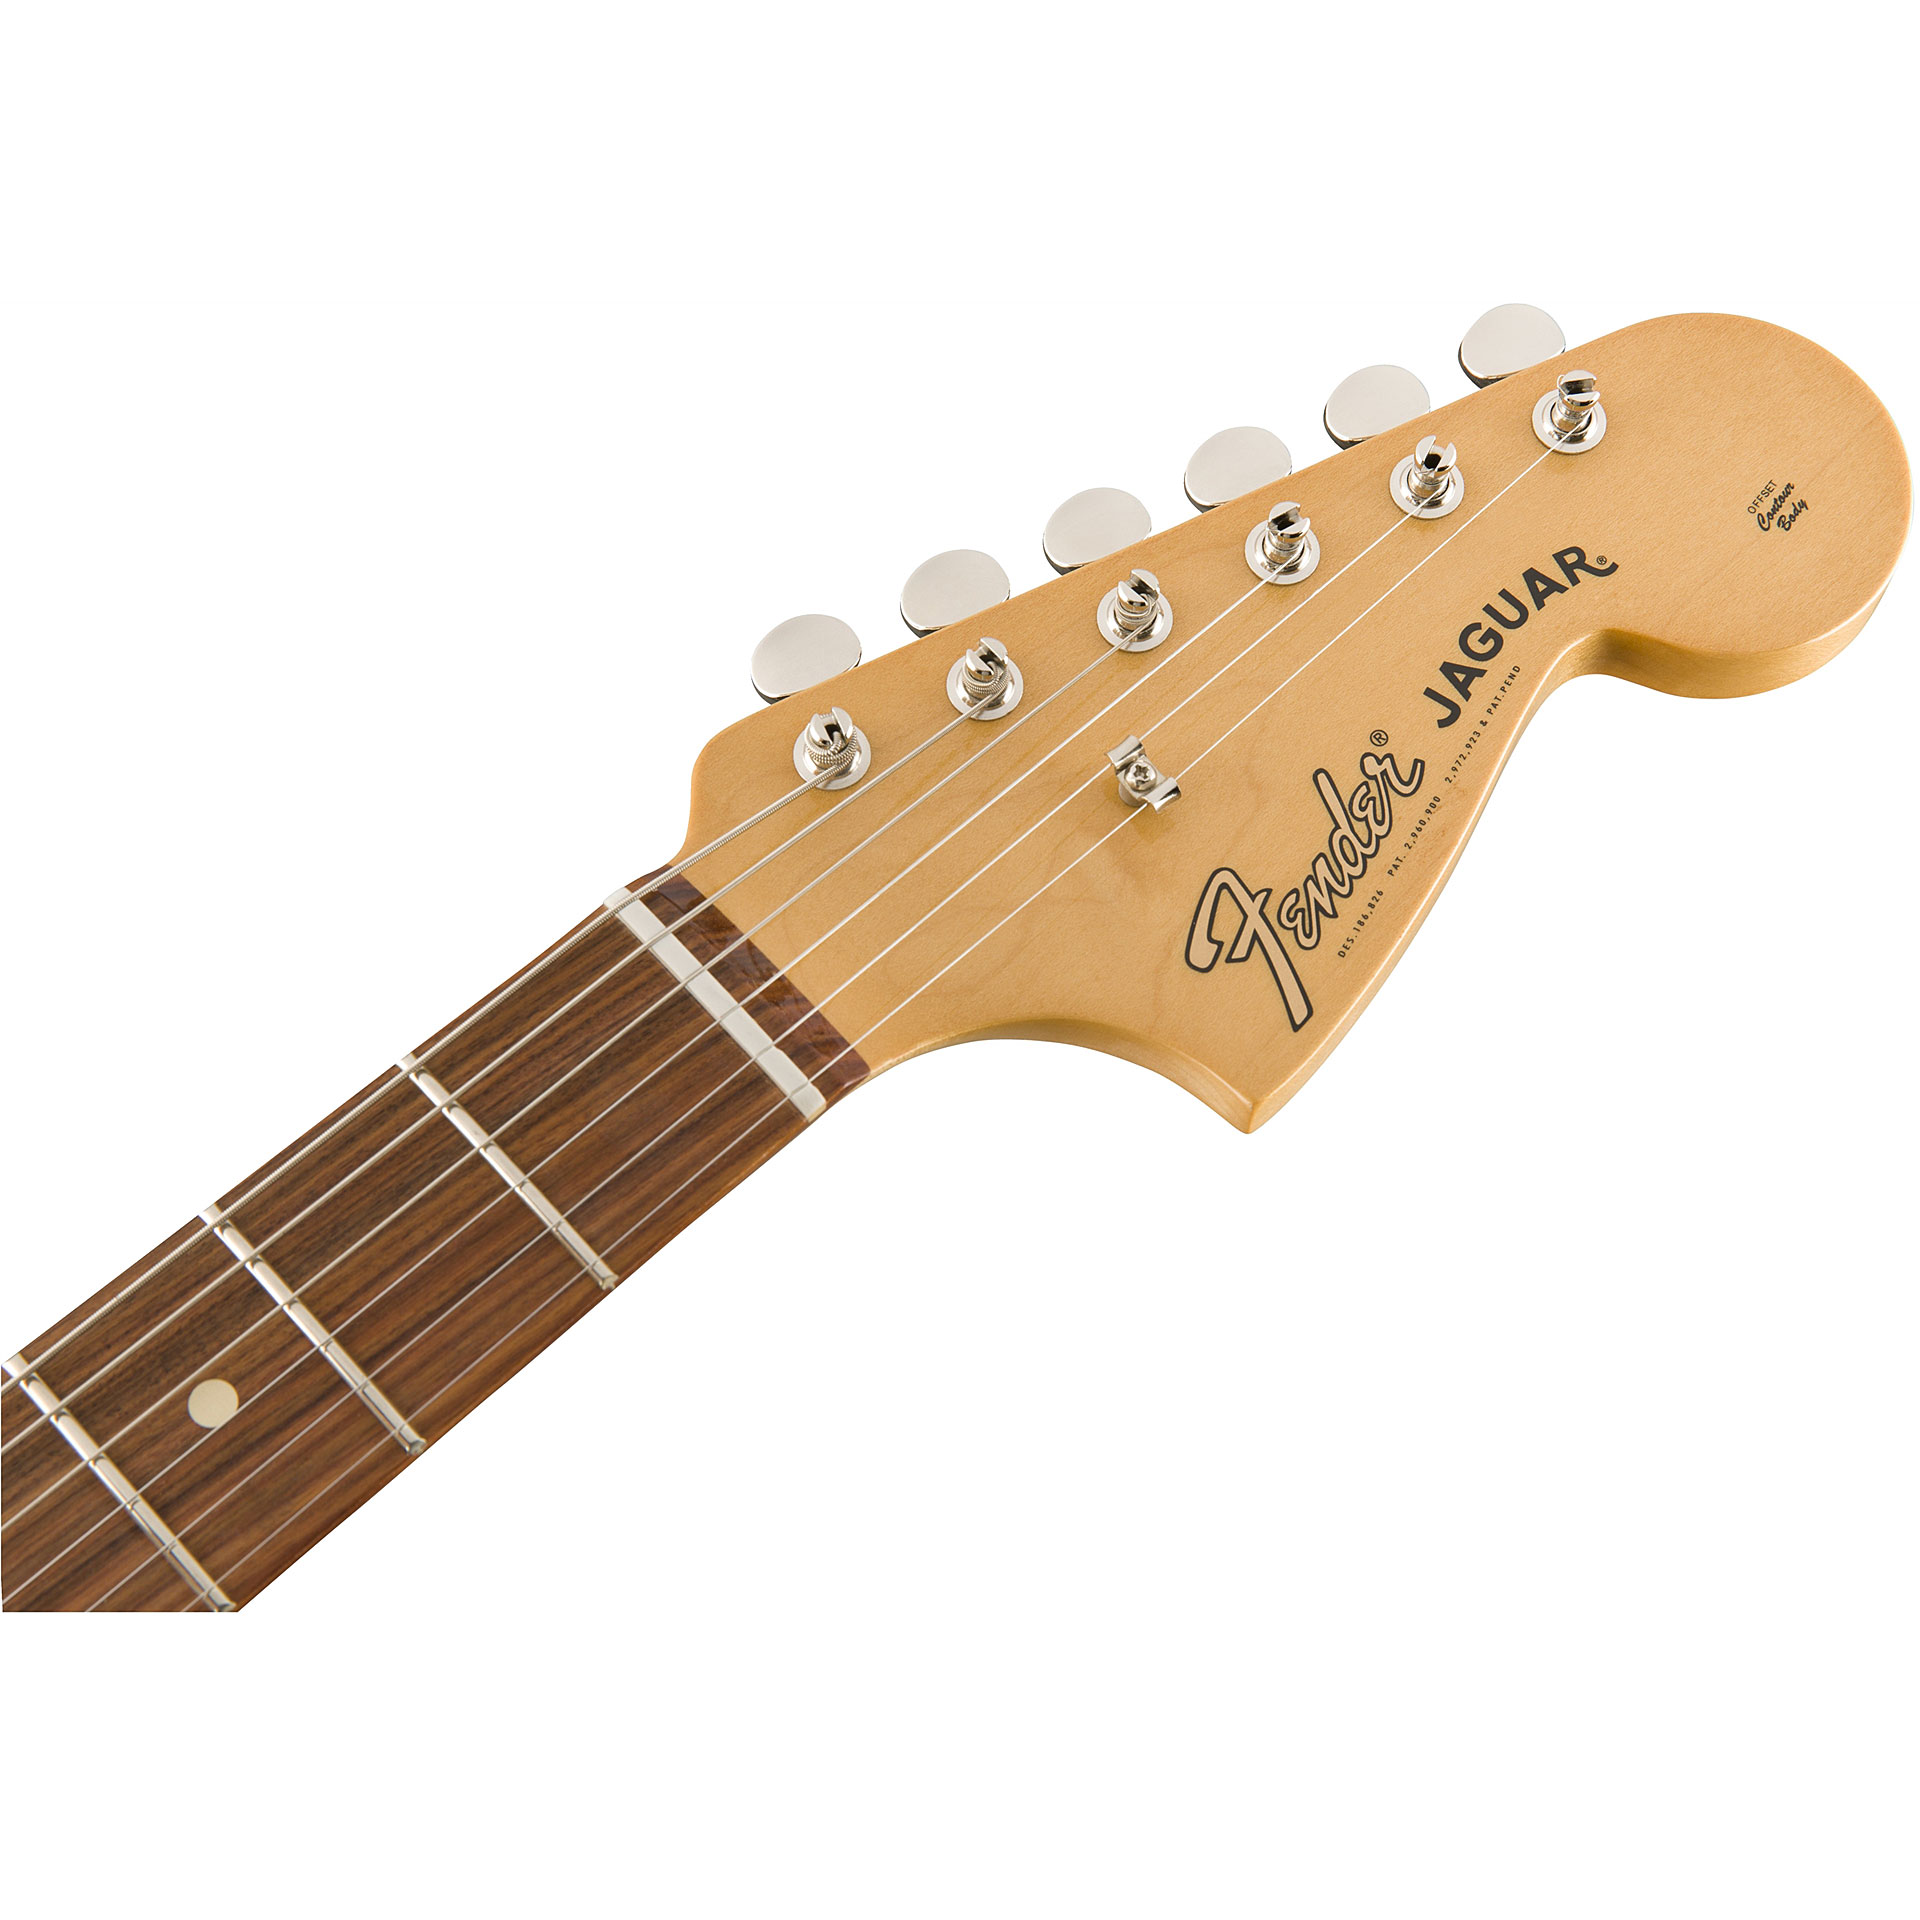 great hh guitar a player user jz start classic solidbody r electric reviews fender special with jg body late jaguar